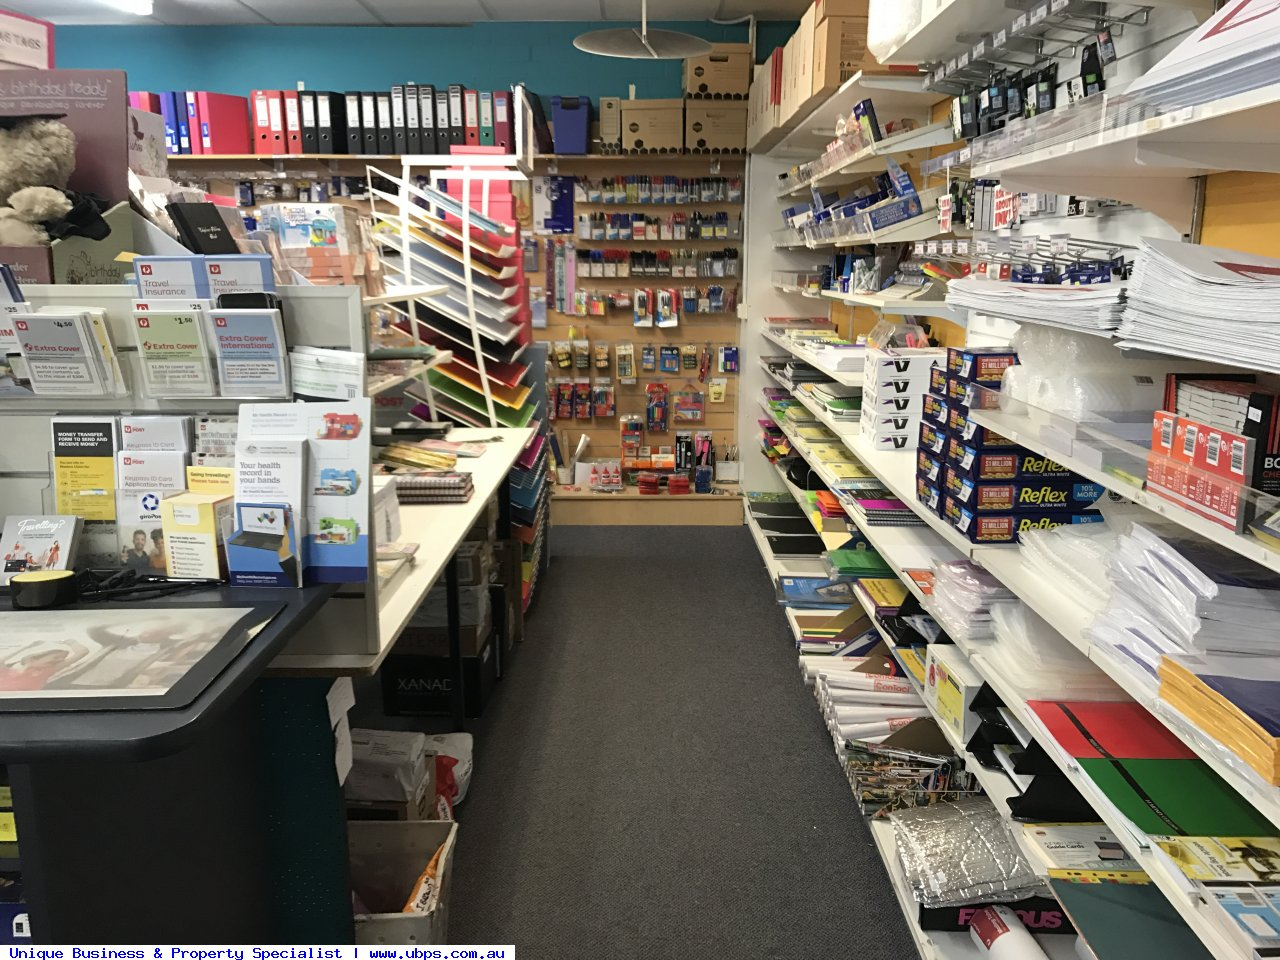 All Agencys - Post Office, Newsagency, Lotteries